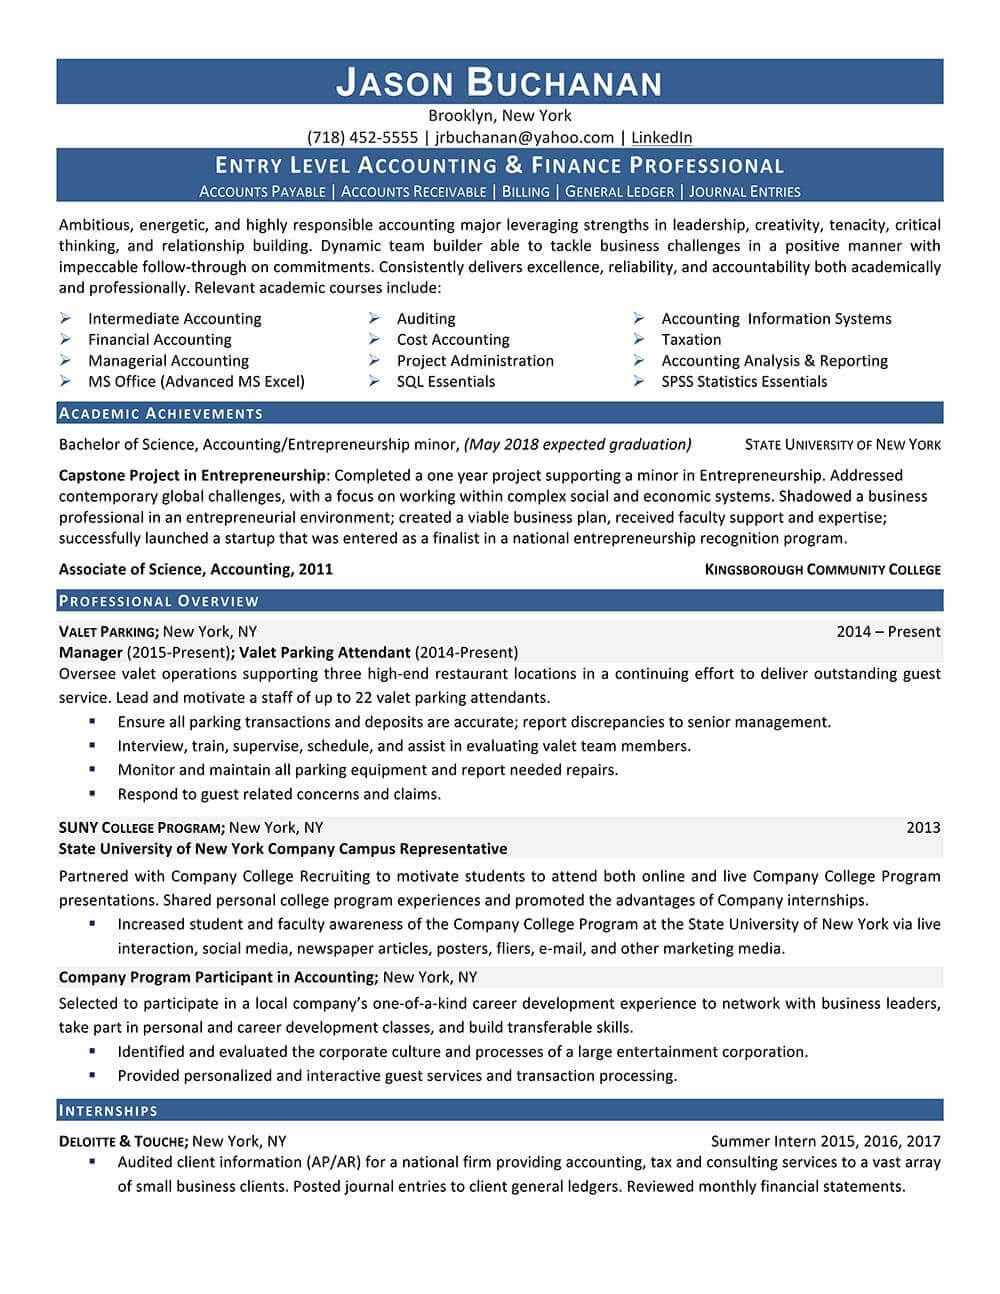 professional resume writing services monster after good college examples preferred group Resume Professional Resume Services Online